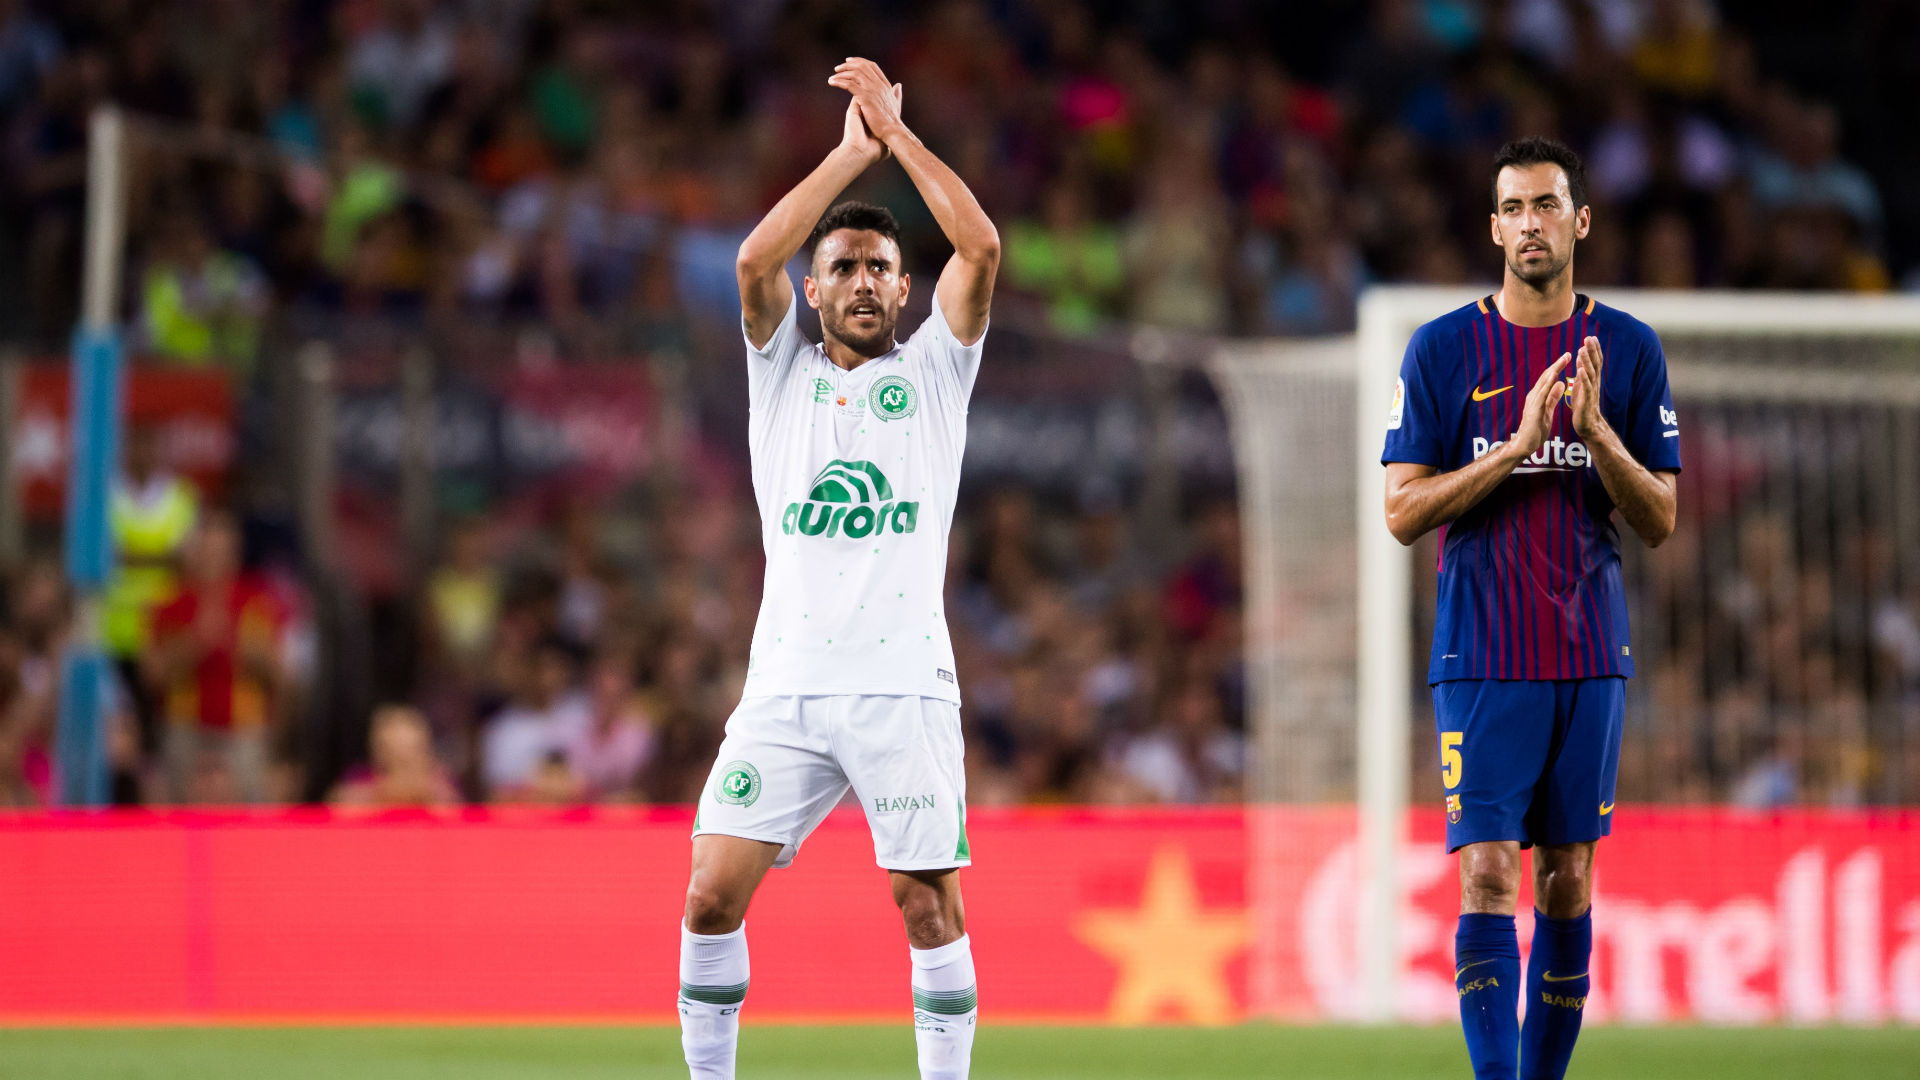 Barcelona - Chapecoense - Alan Ruschel - Camp Nou - Friendly